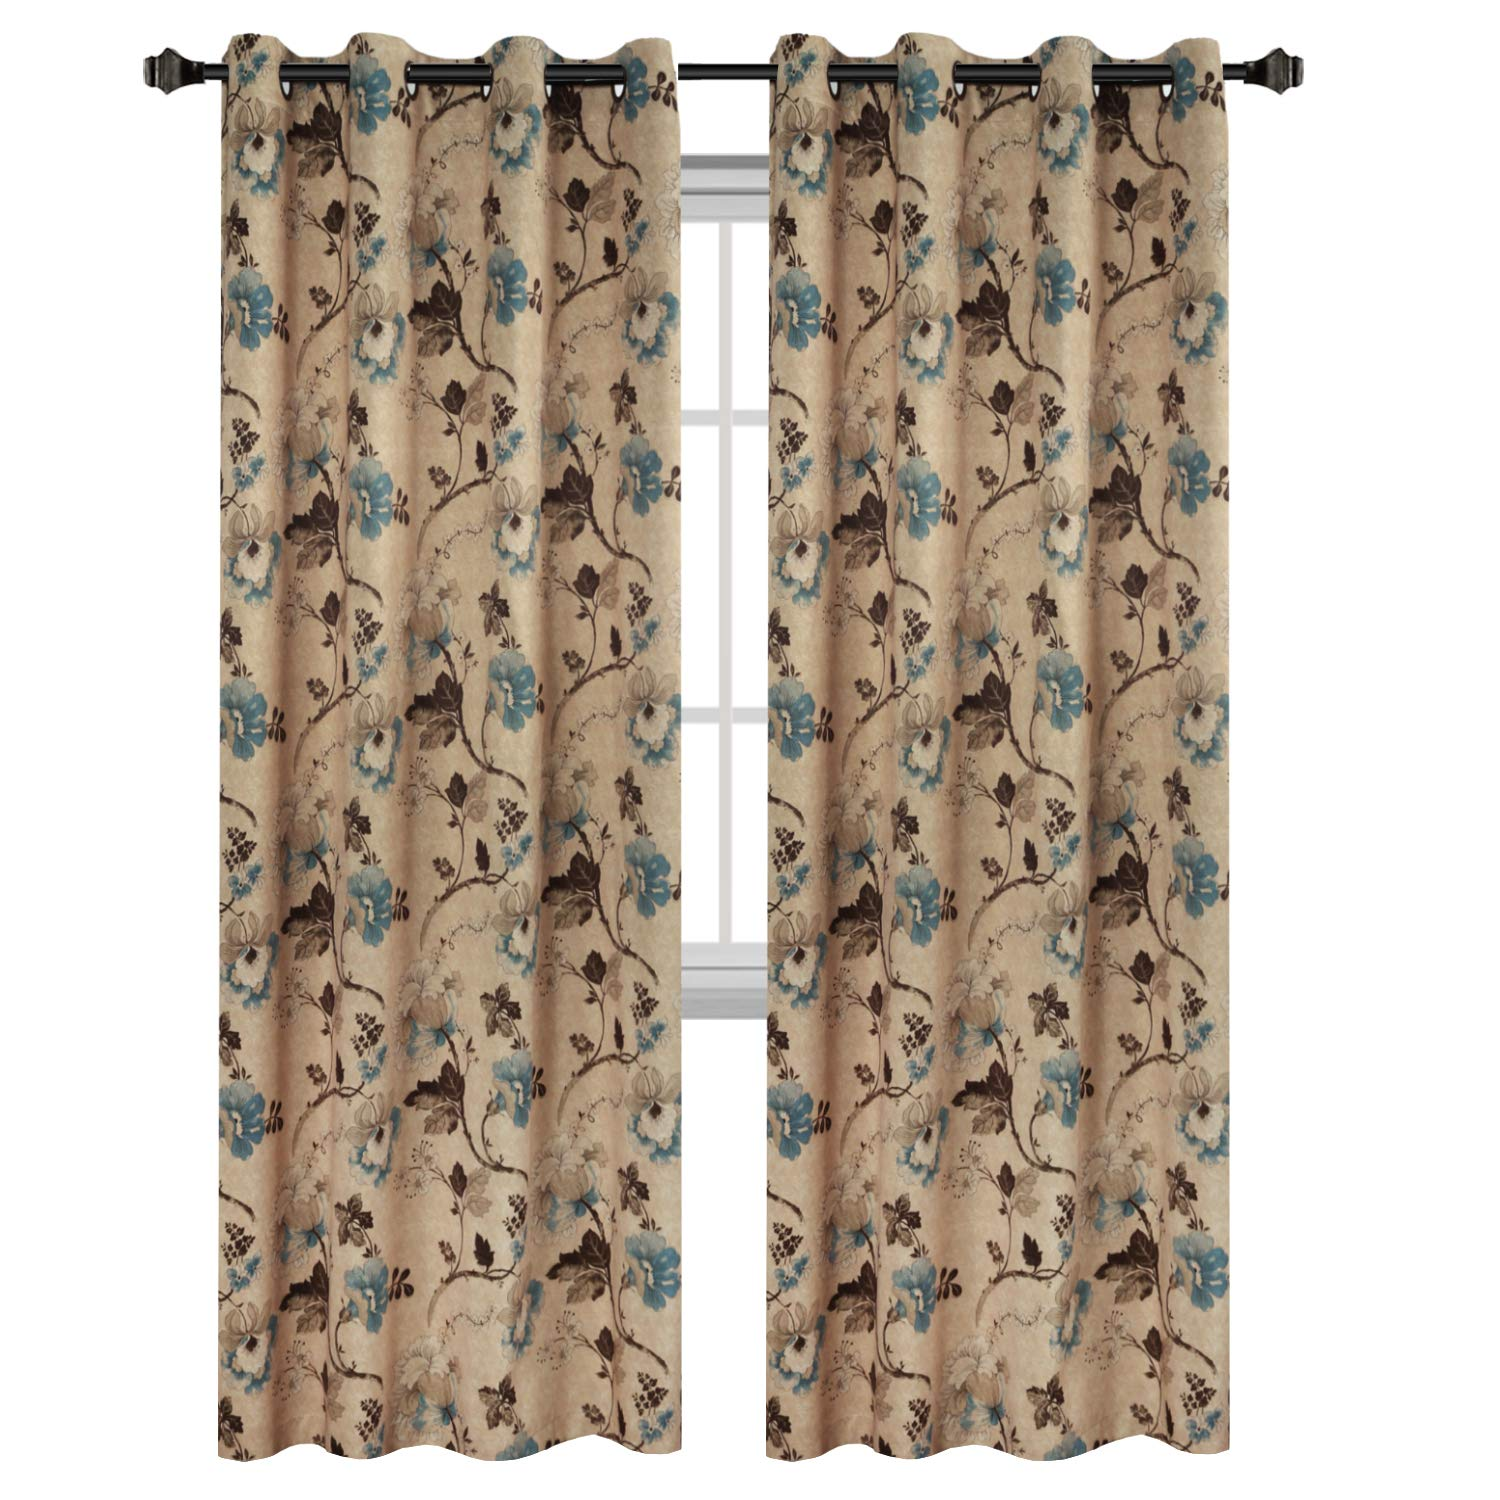 H.VERSAILTEX Vintage Floral with Brown Aqua Taupe Pattern Blackout Living Room/Bedroom Window Curtains (2 Panels, Copper Grommets, 52 by 84 inch Long)